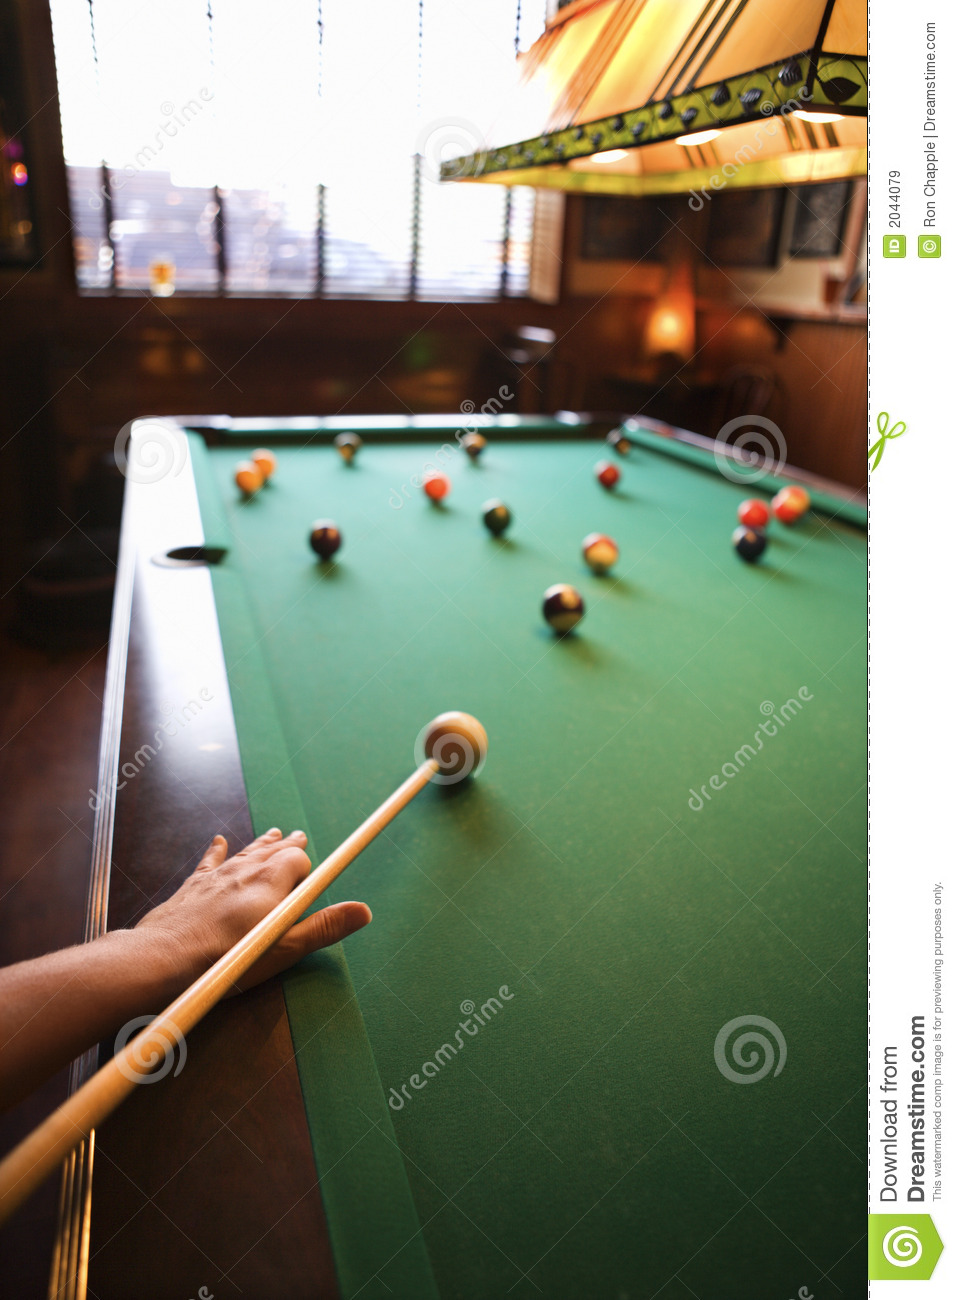 Woman Preparing To Hit Pool Ball. Stock Image - Image of shooting ... bec21d26a2